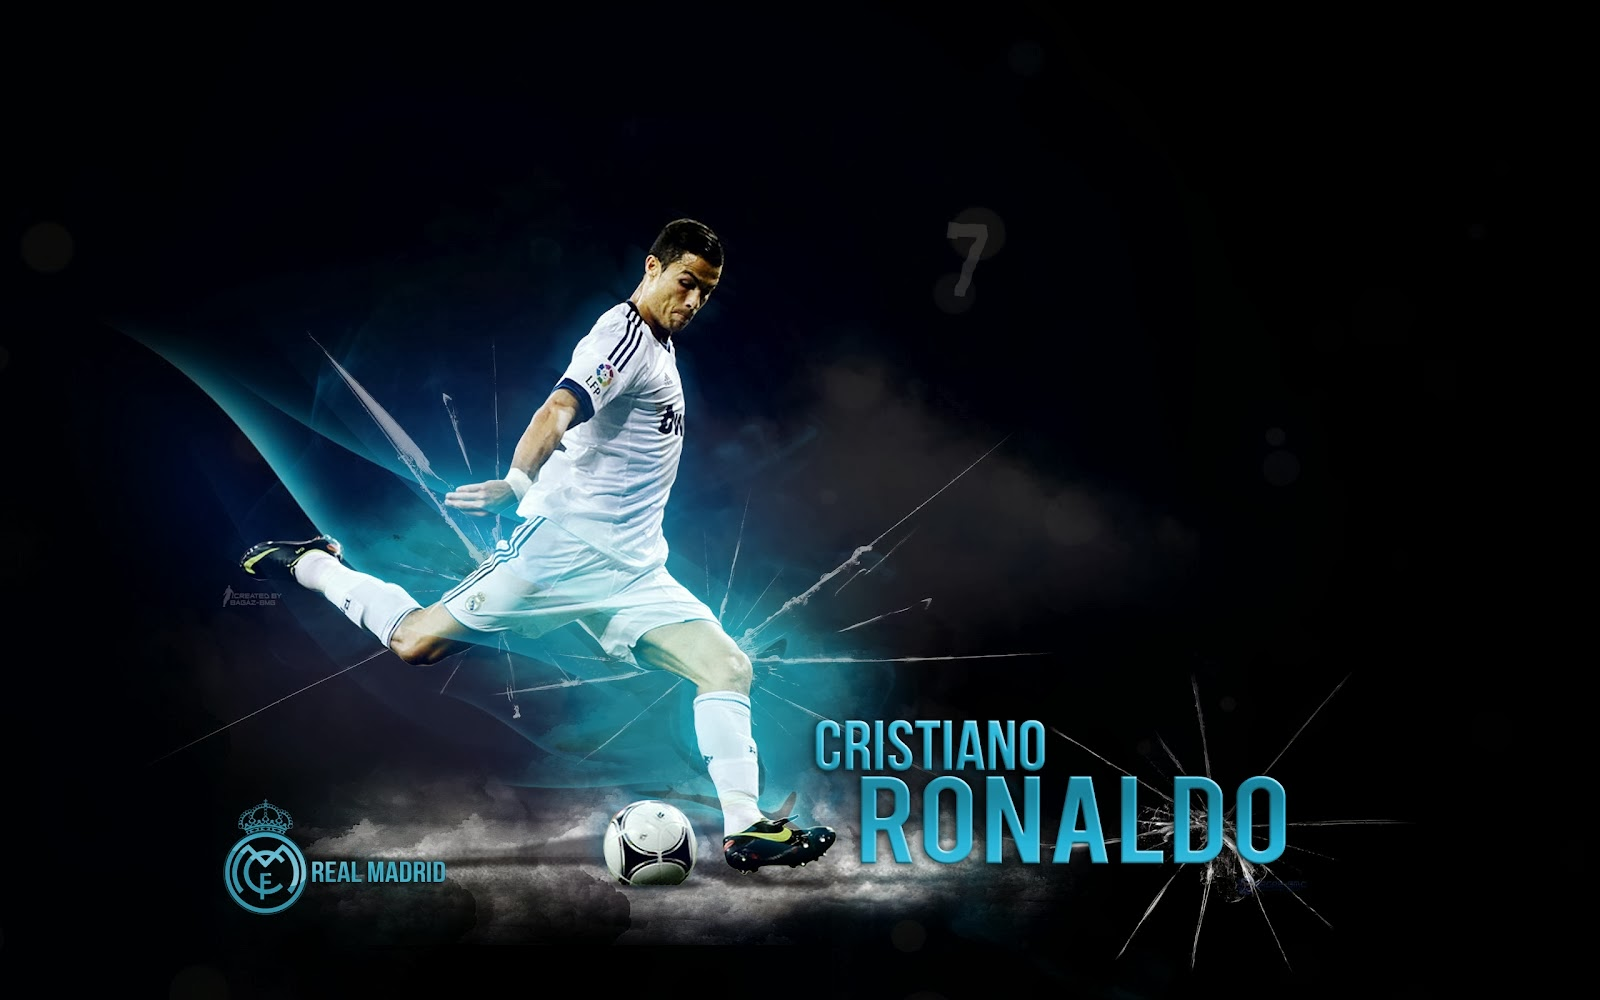 Cristiano Ronaldo HD Wallpaper,Images,Pics - HD Wallpapers Blog